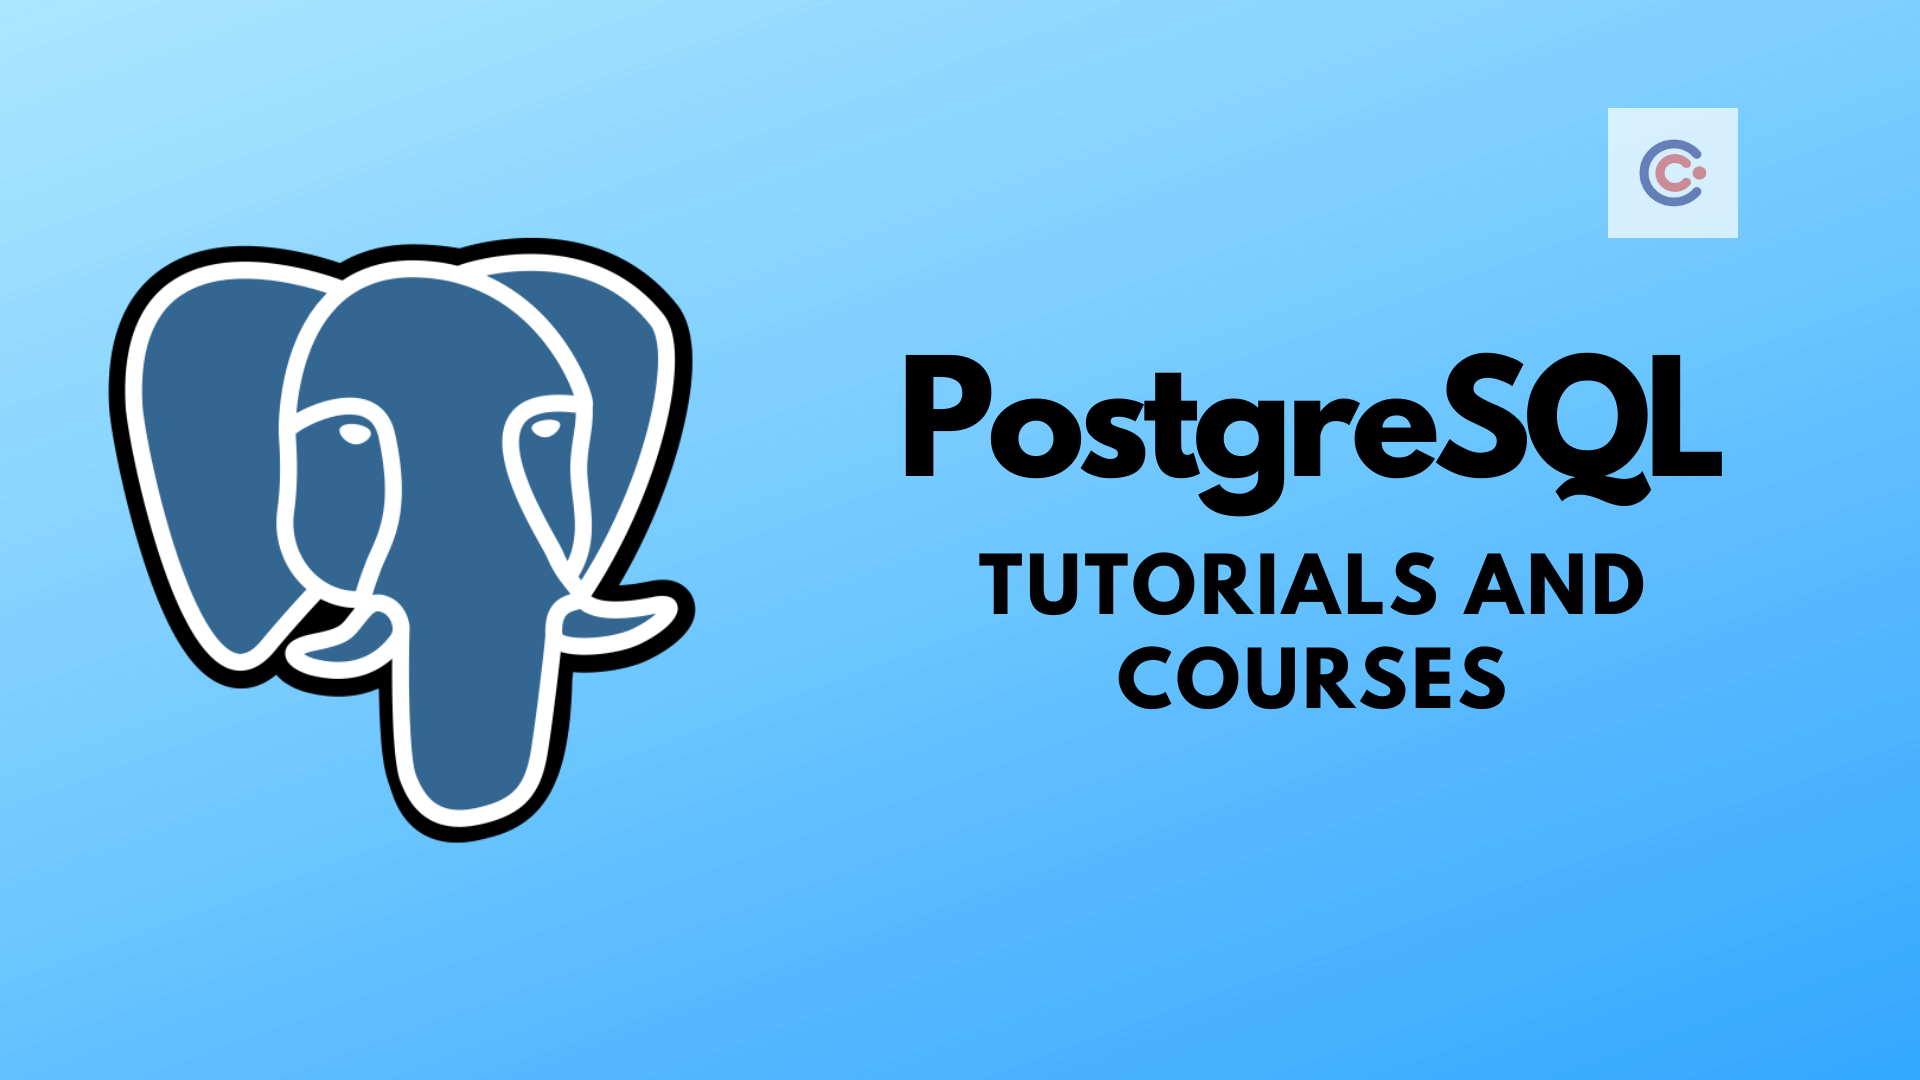 9 Best PostgreSQL Tutorials and Courses - Learn PostgreSQL Online